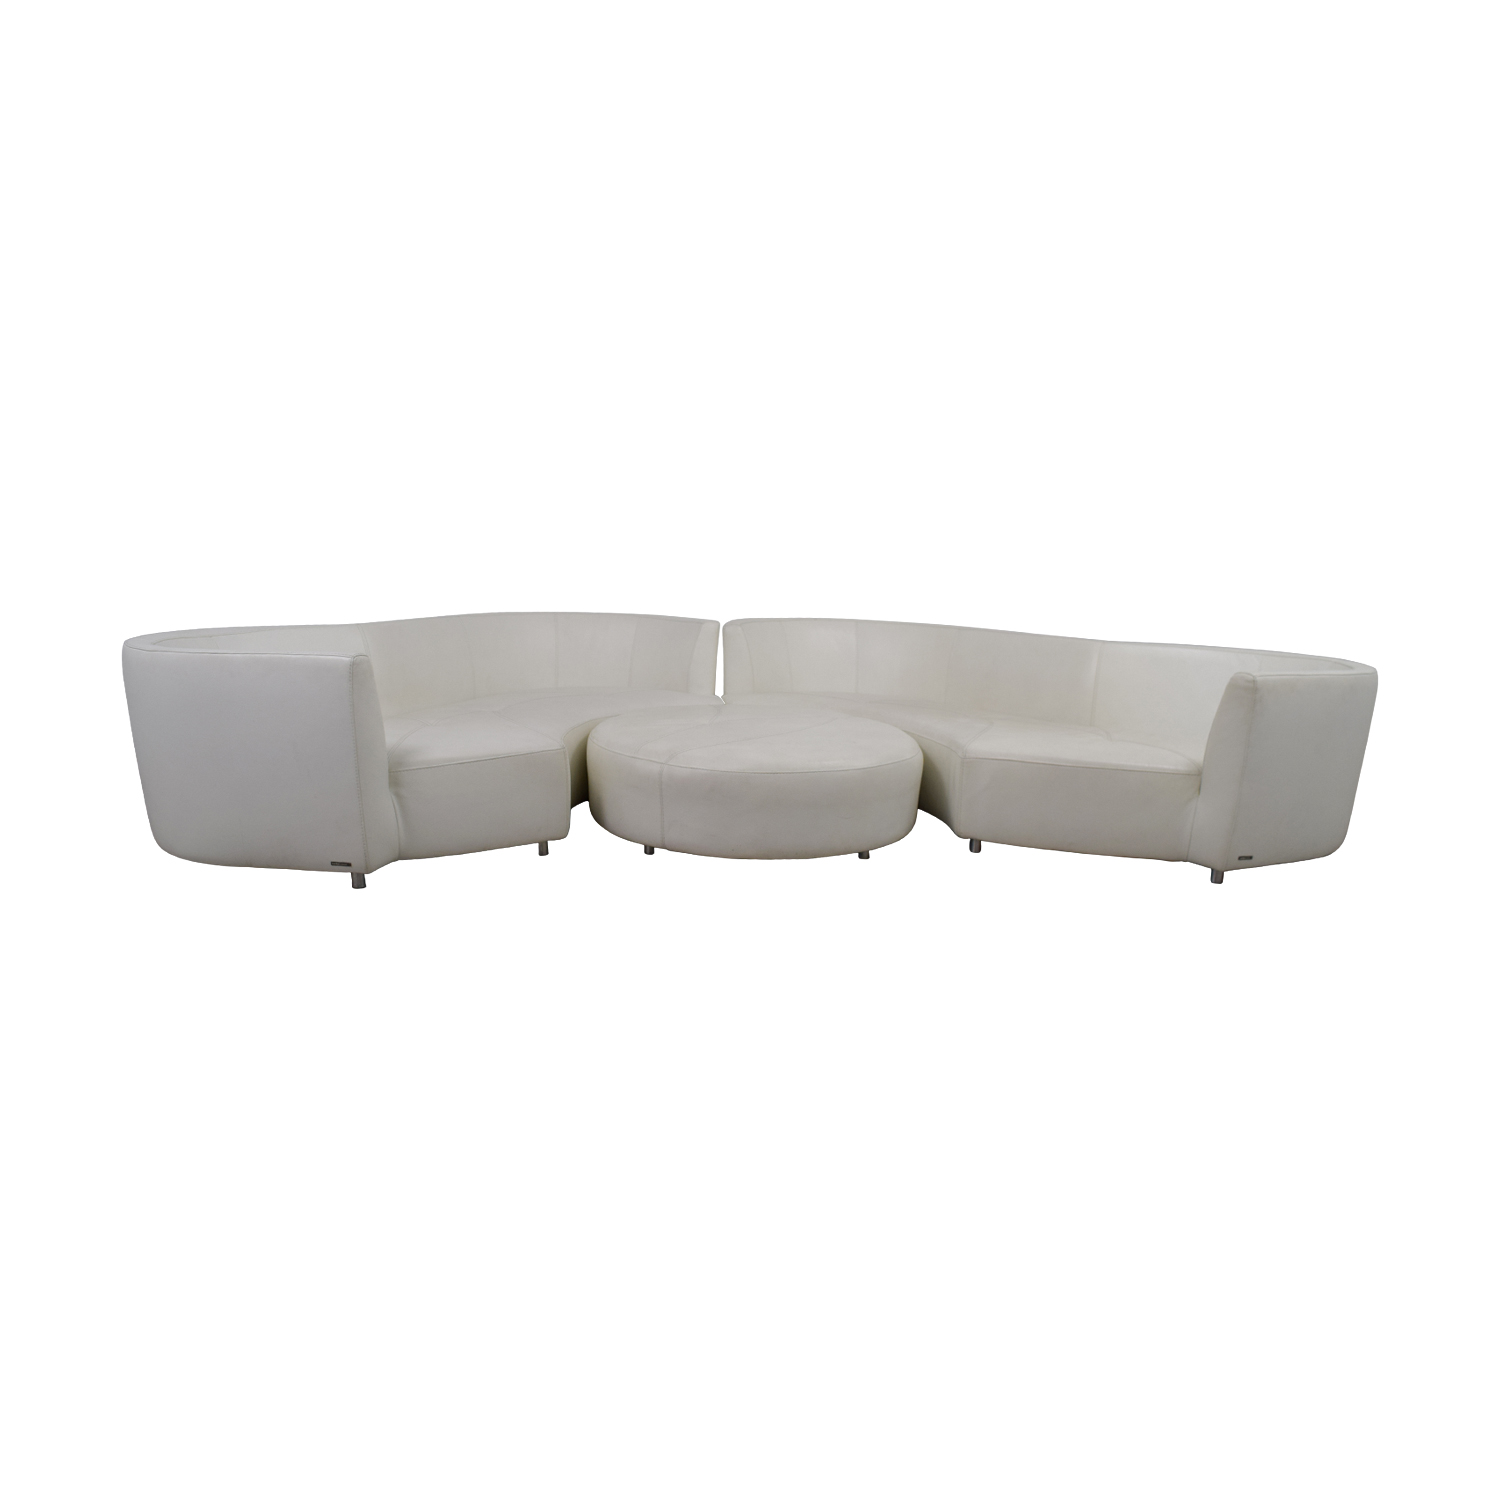 73% OFF   Roche Bobois Roche Bobois White Digital Curved Three Cushion  Sofas With Ottoman / Sofas